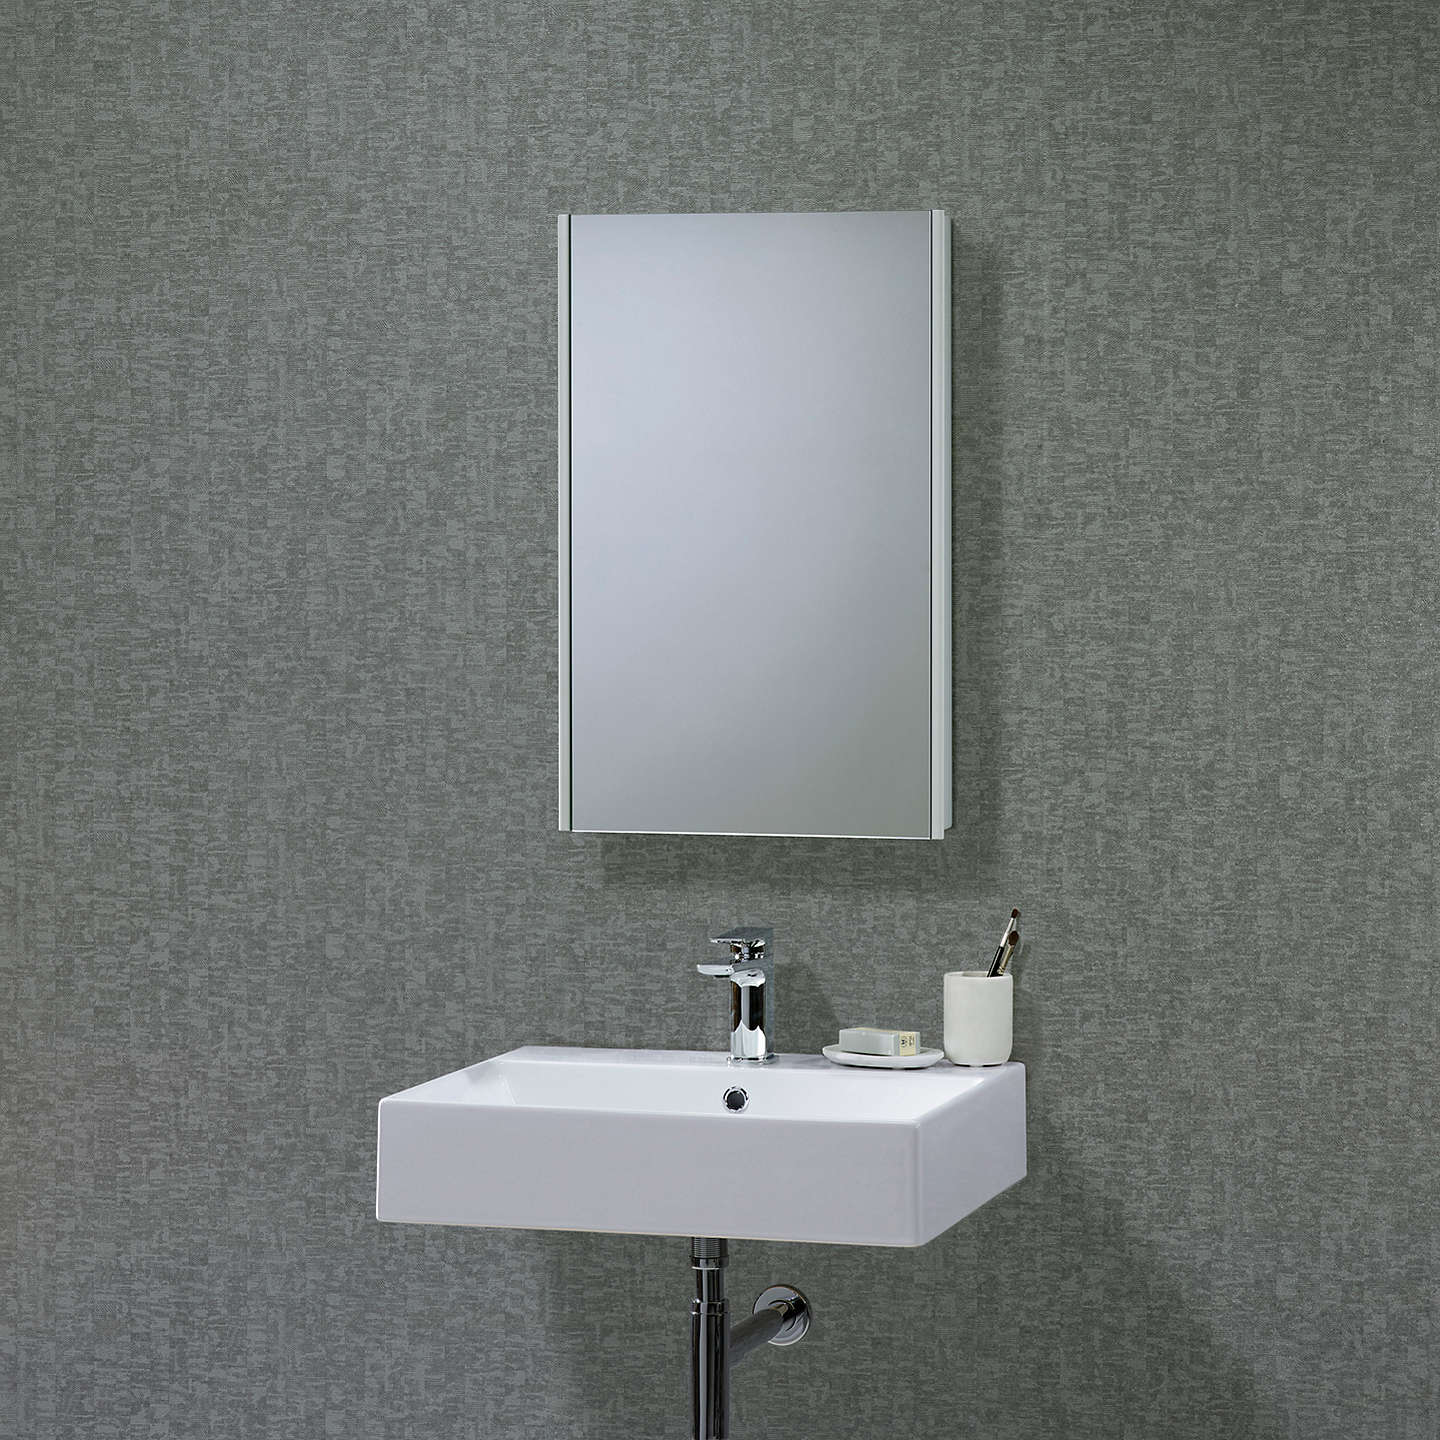 BuyRoper Rhodes Limit Slimline Single Mirrored Bathroom Cabinet Online at johnlewis.com ... : slimline bathroom storage  - Aquiesqueretaro.Com